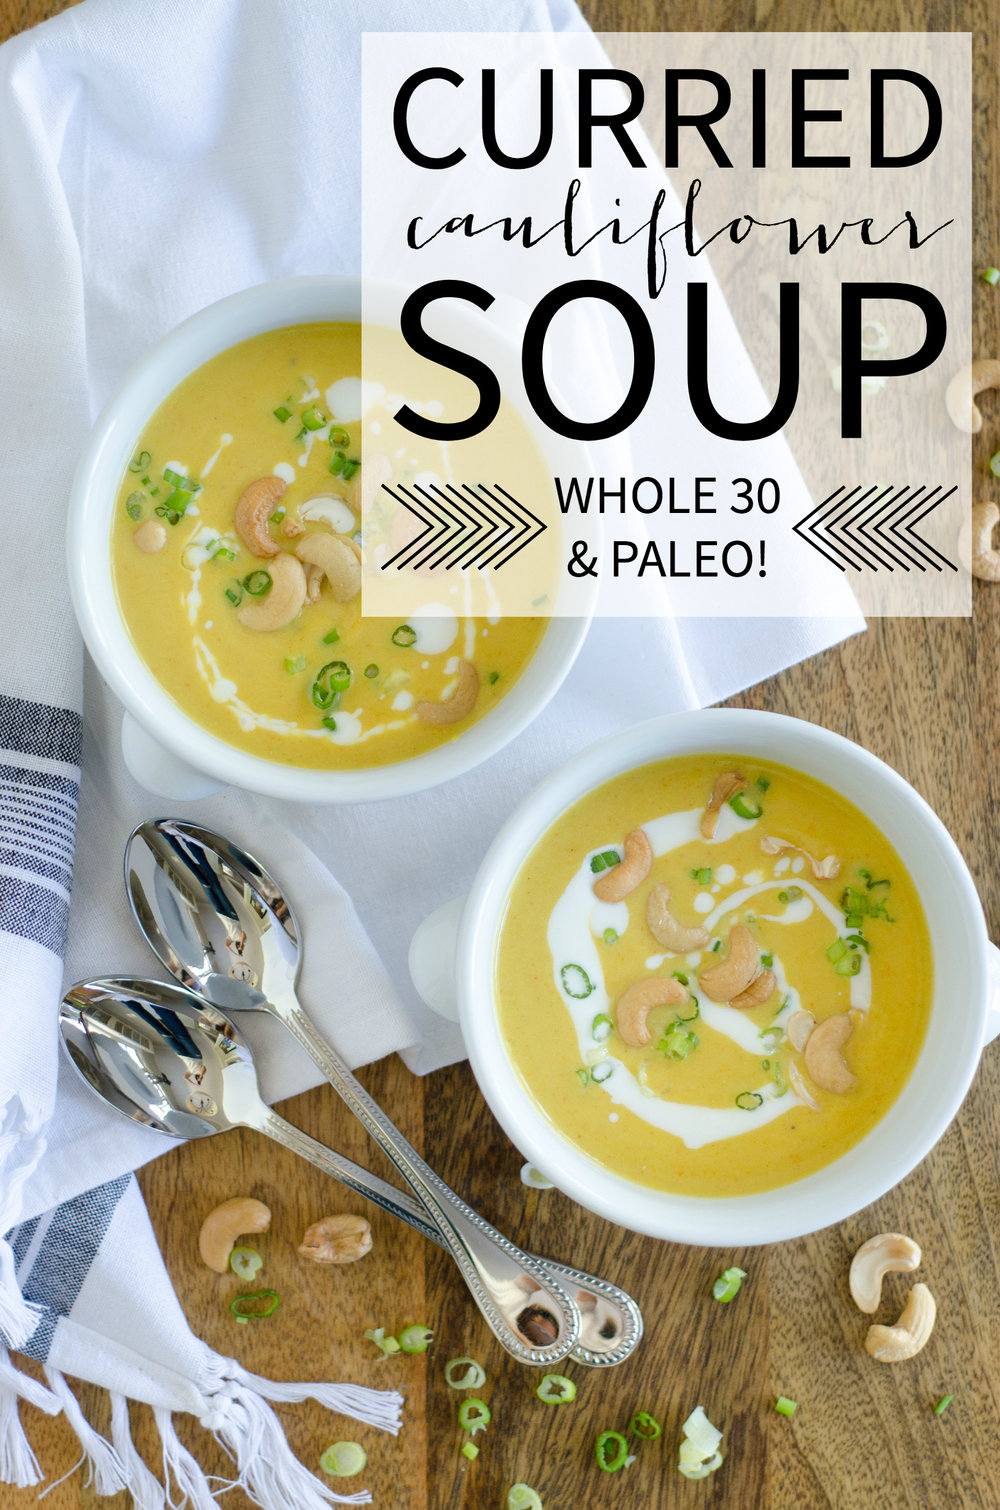 Curried Cauliflower Soup - Paleo and Whole 30 Compliant